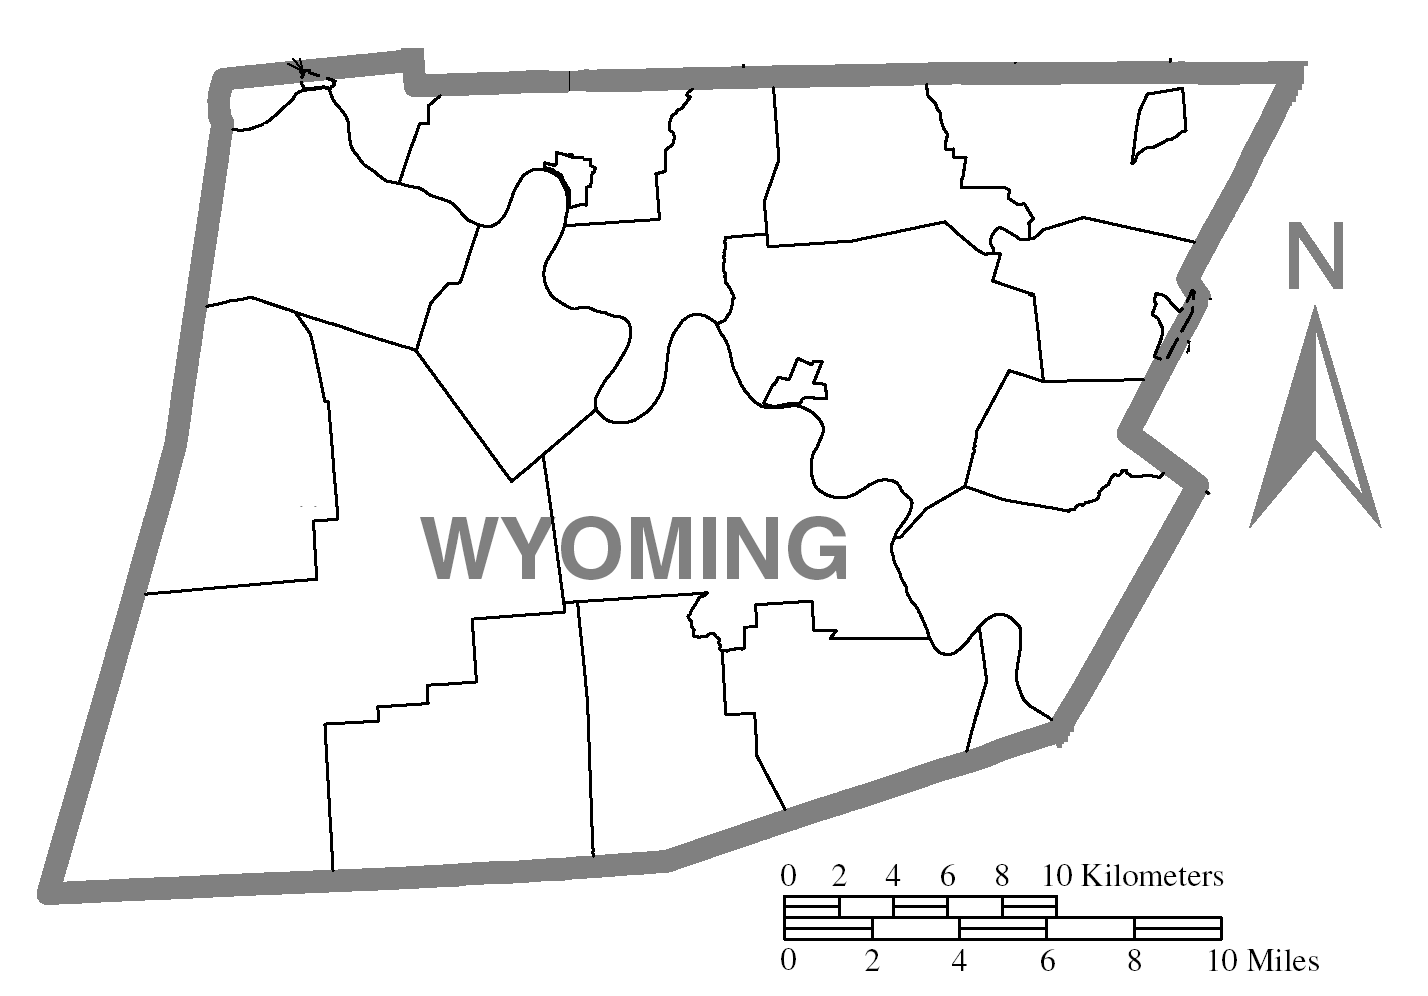 File:Map of Wyoming County, Pennsylvania No Text.png.